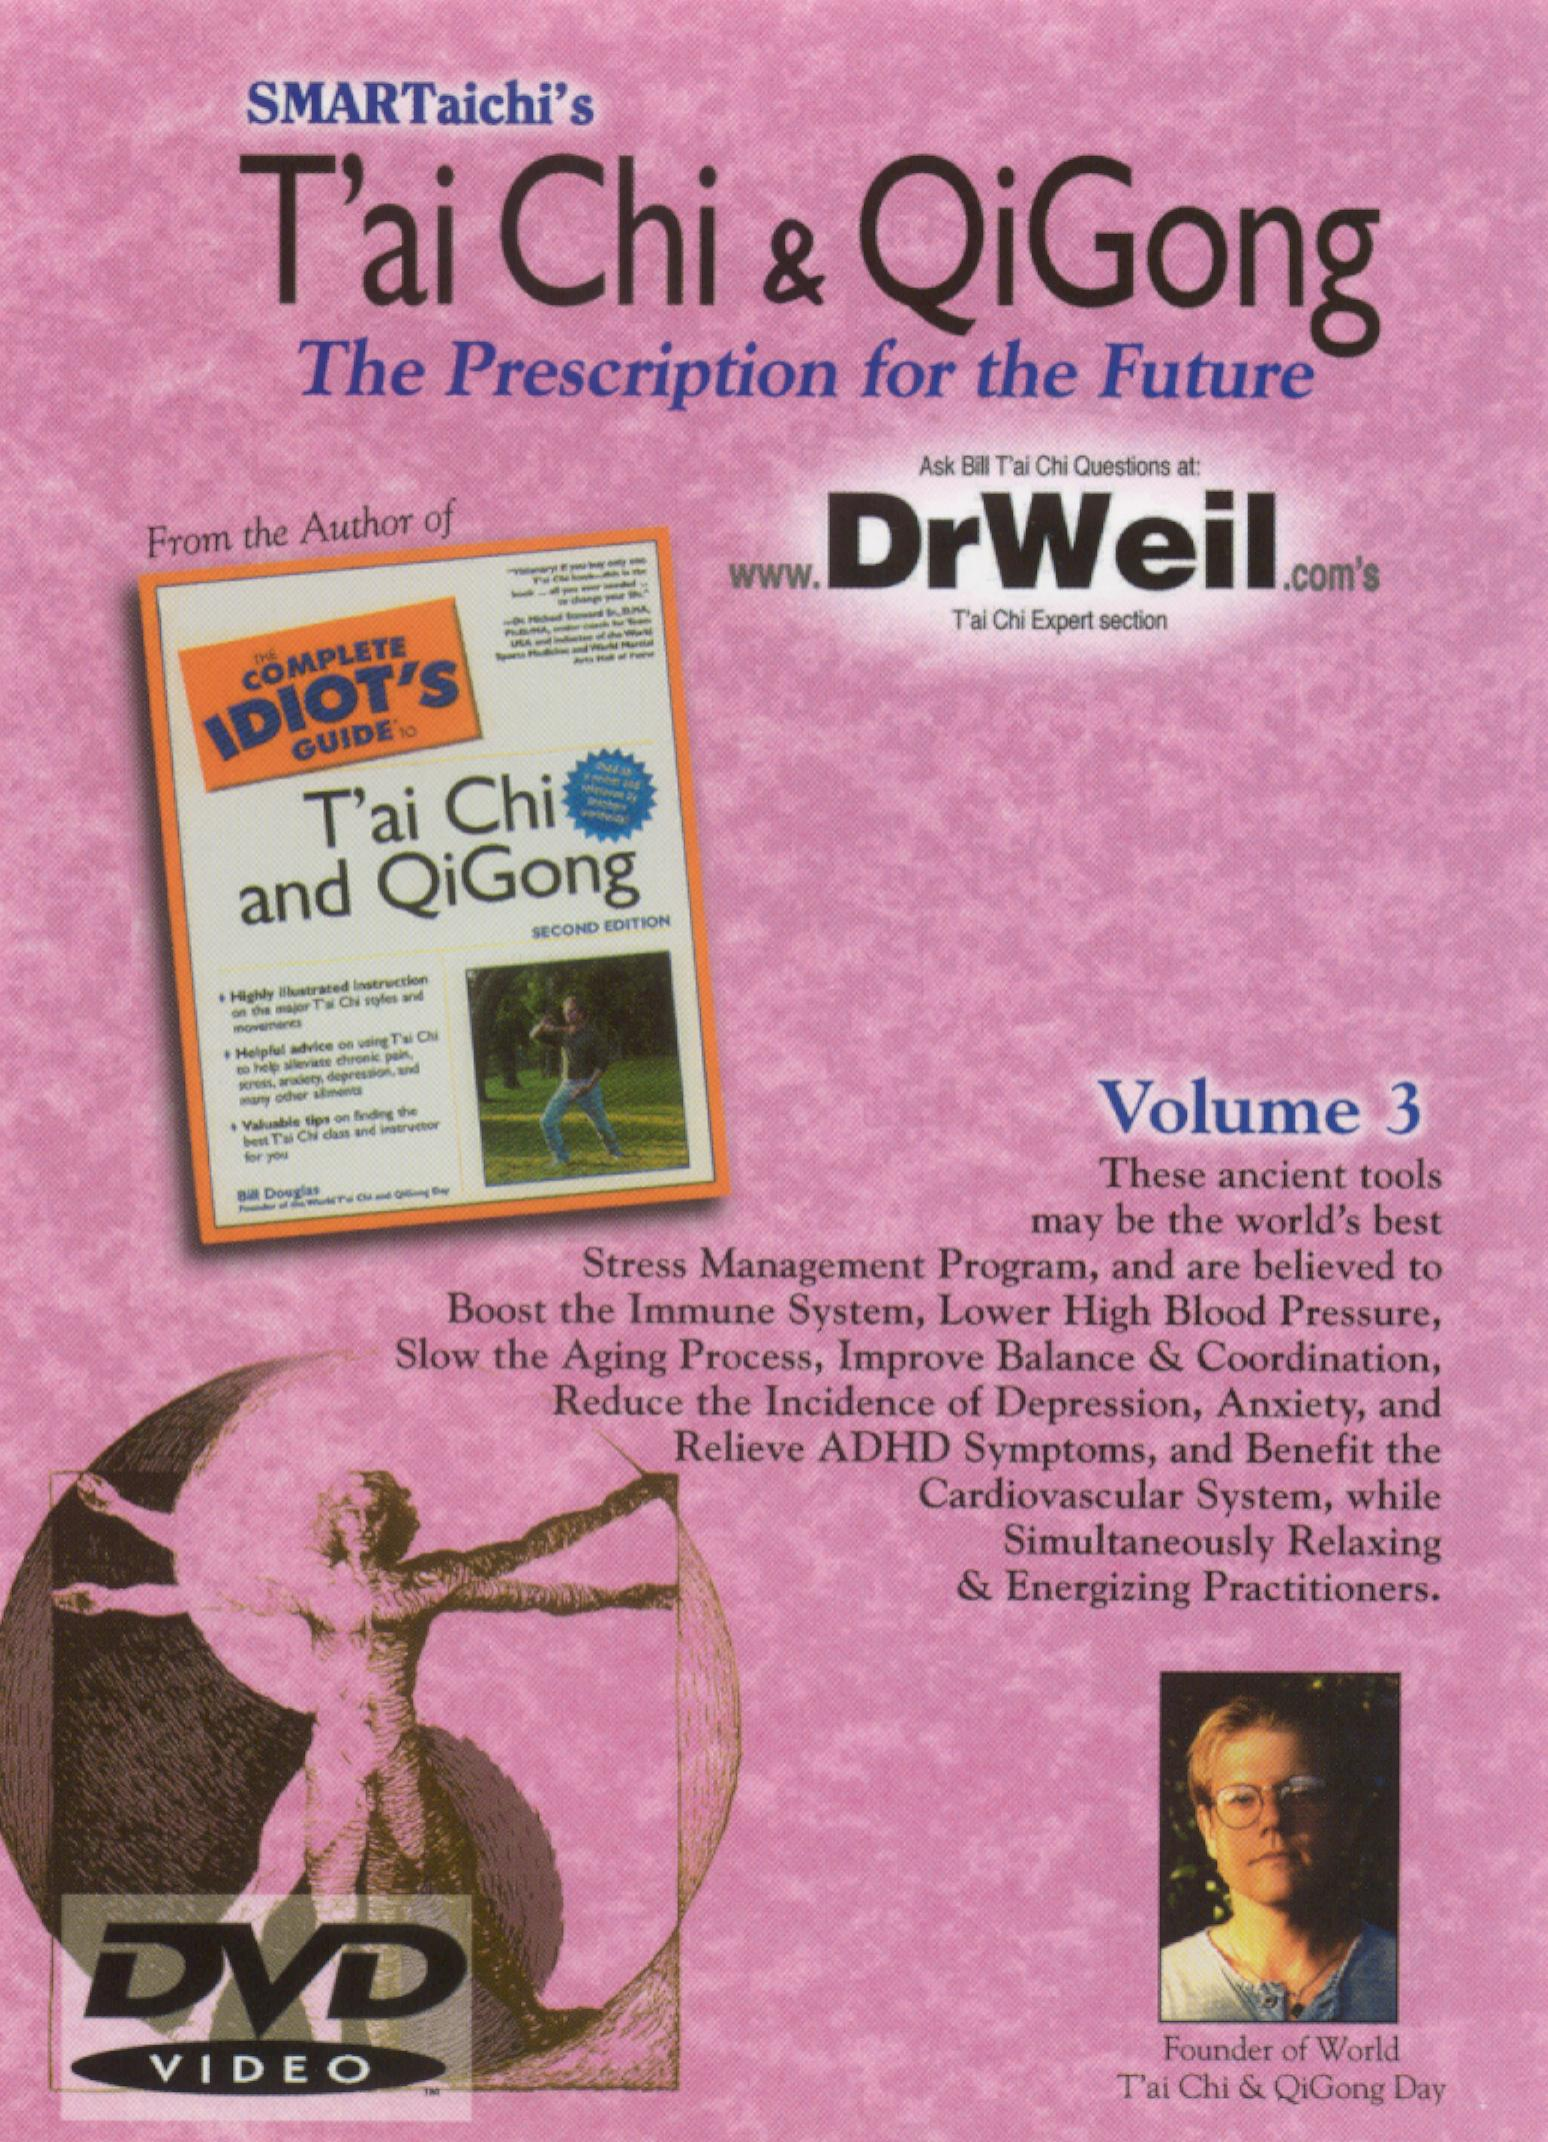 T'ai Chi & QiGong: The Prescription for the Future, Vol. 3